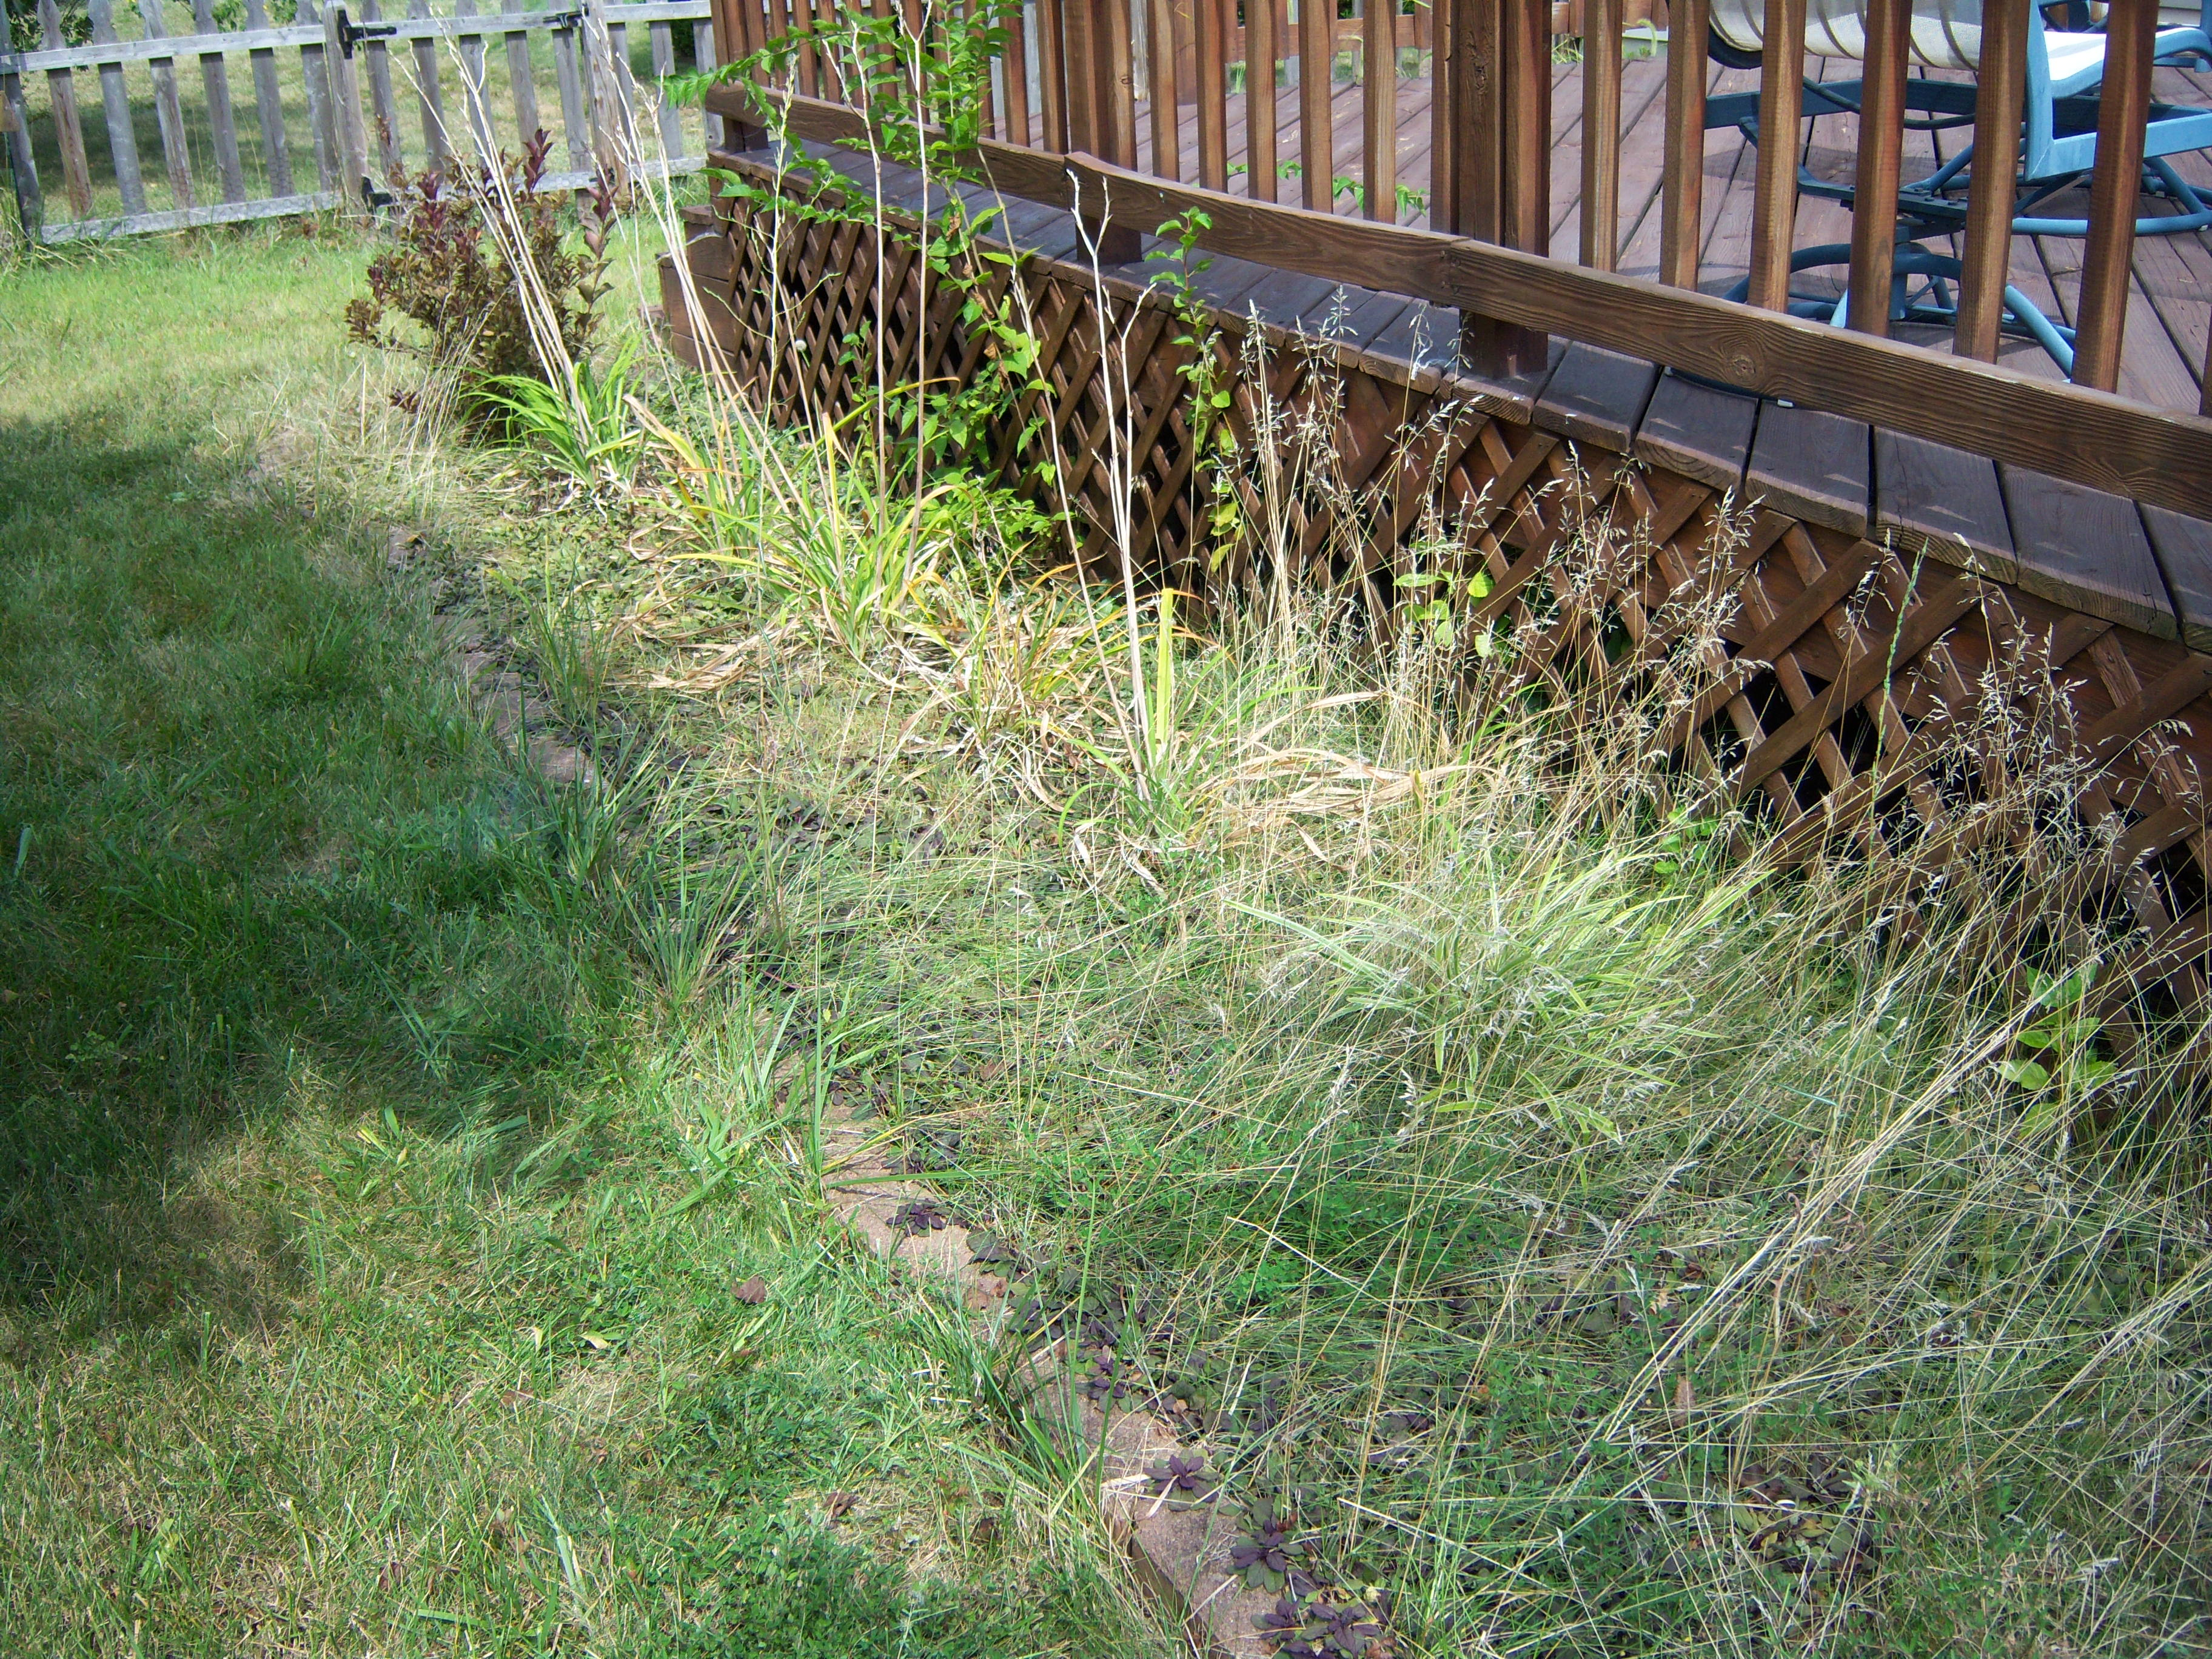 Weeds flower beds - Overgrown Overgrown Apparently Flower Beds